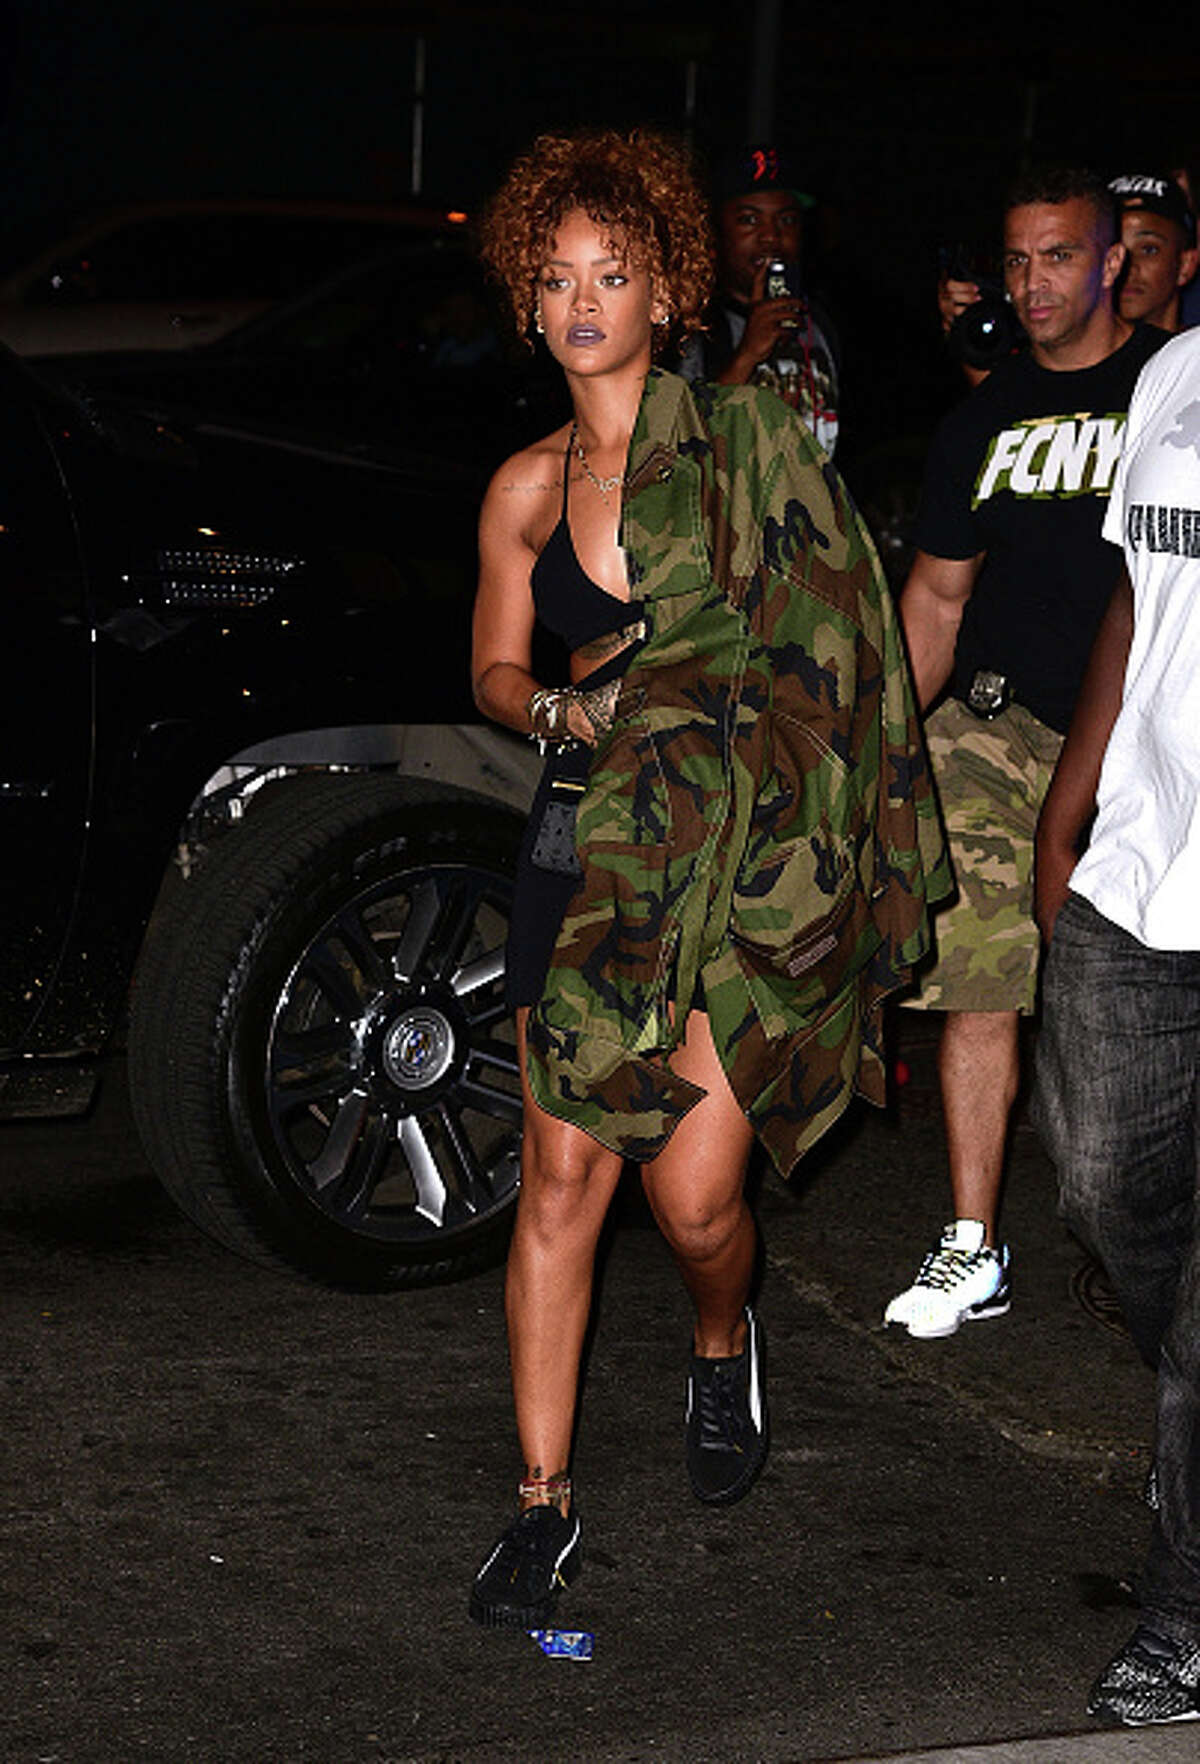 NEW YORK, NY - SEPTEMBER 09: Rihanna attends Travis Scott concert at Gramercy Theatre on September 9, 2015 in New York City. (Photo by James Devaney/GC Images)